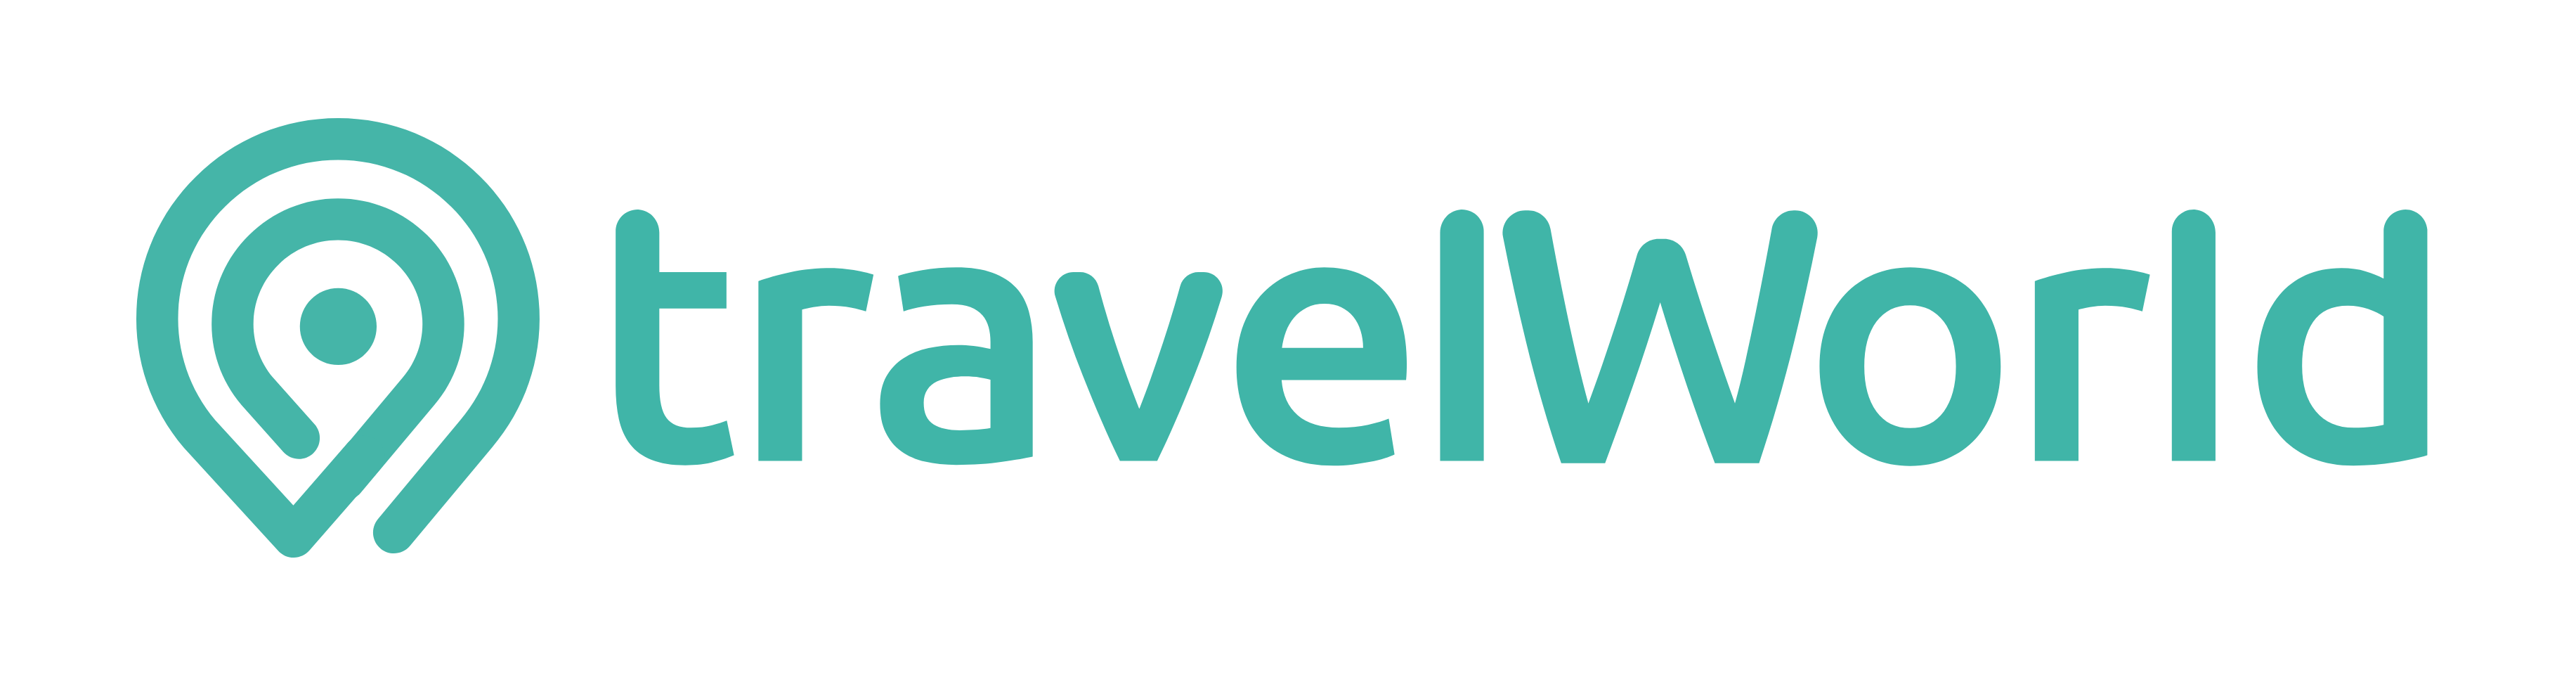 travelWorld - logo // ANIXE travel partner